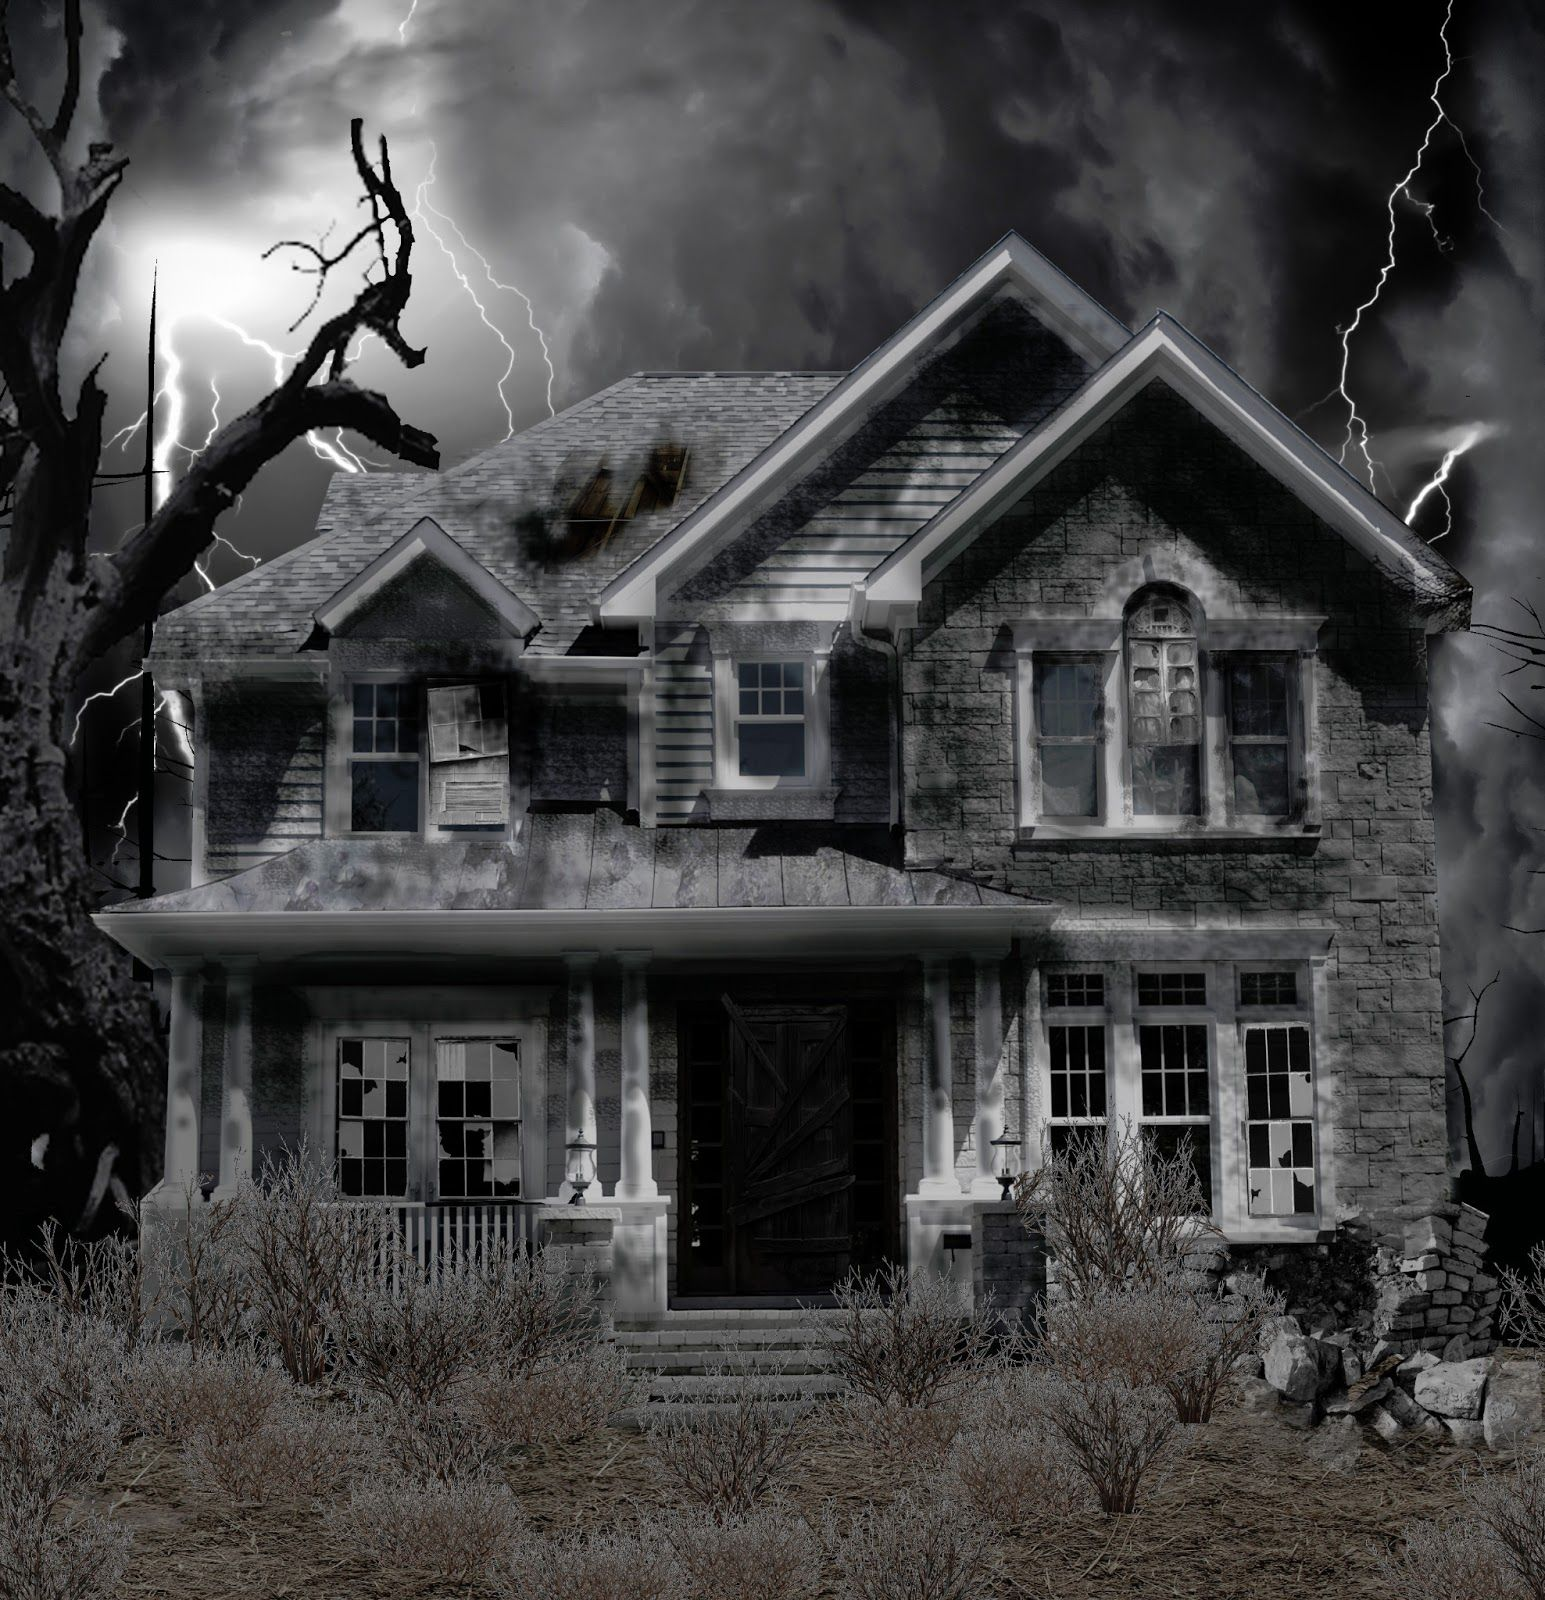 Project 1: Haunted House (photo